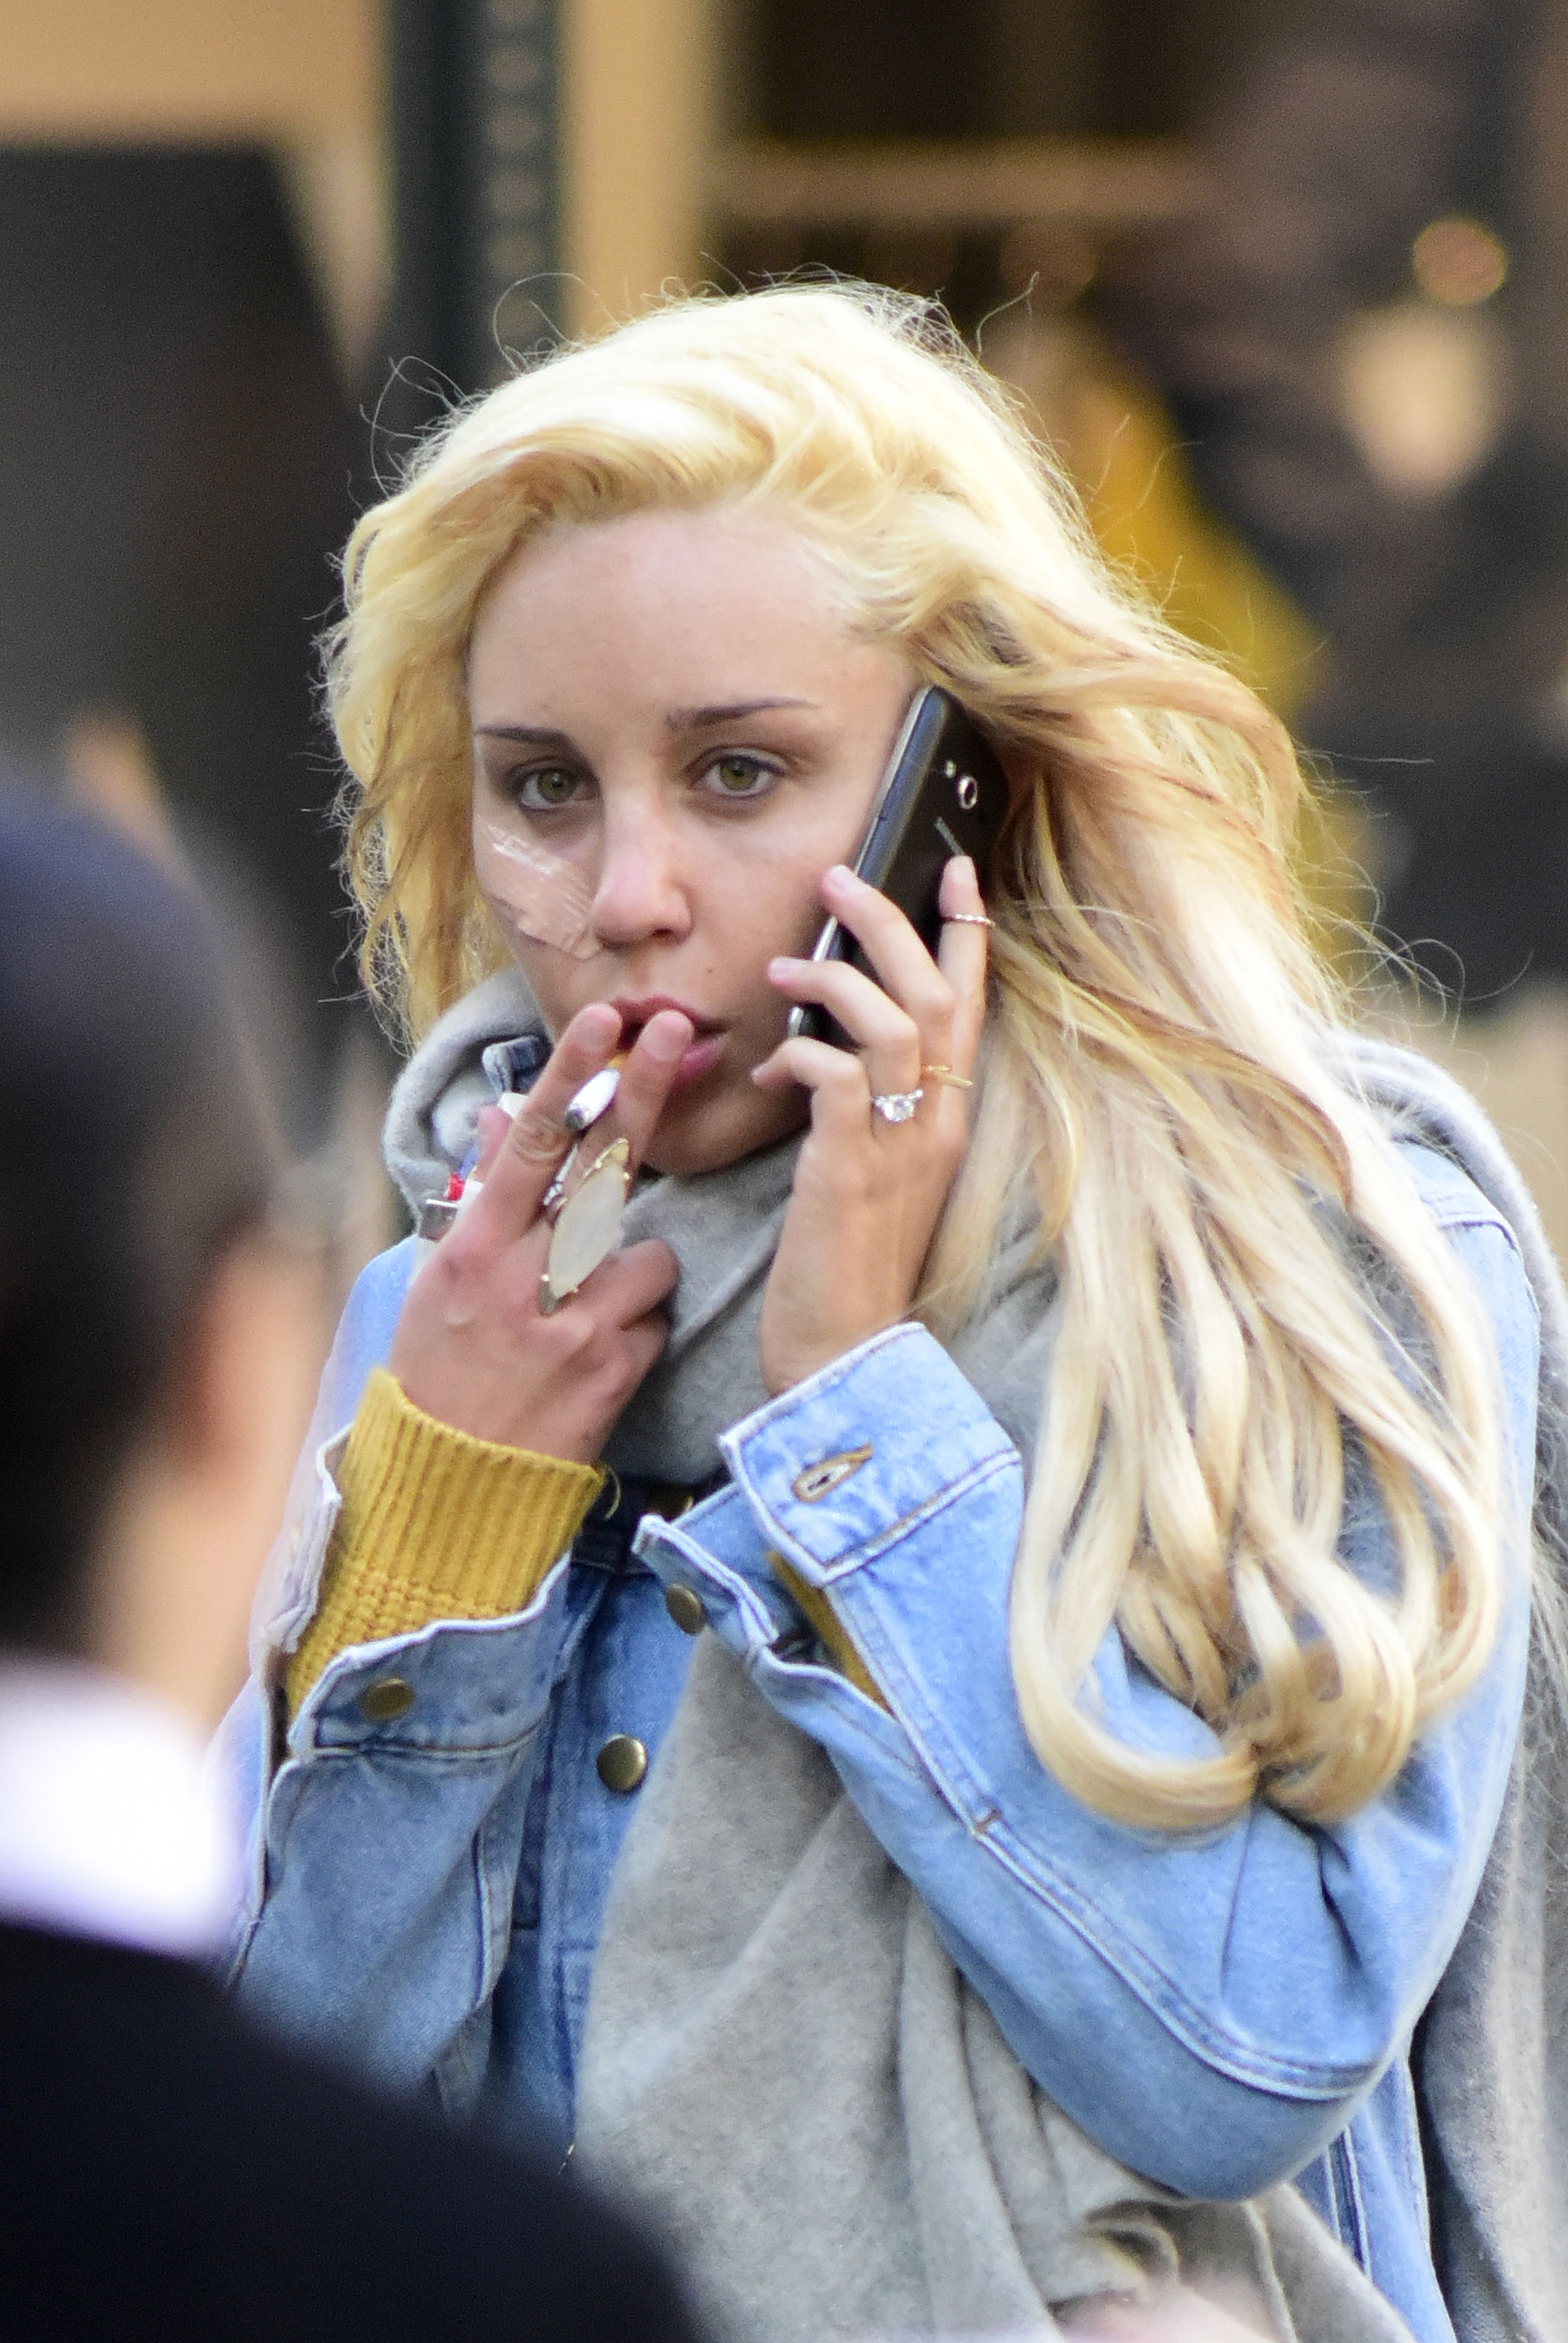 EXCLUSIVE: Amanda Bynes smokes while walking on Madison Avenue in New York City